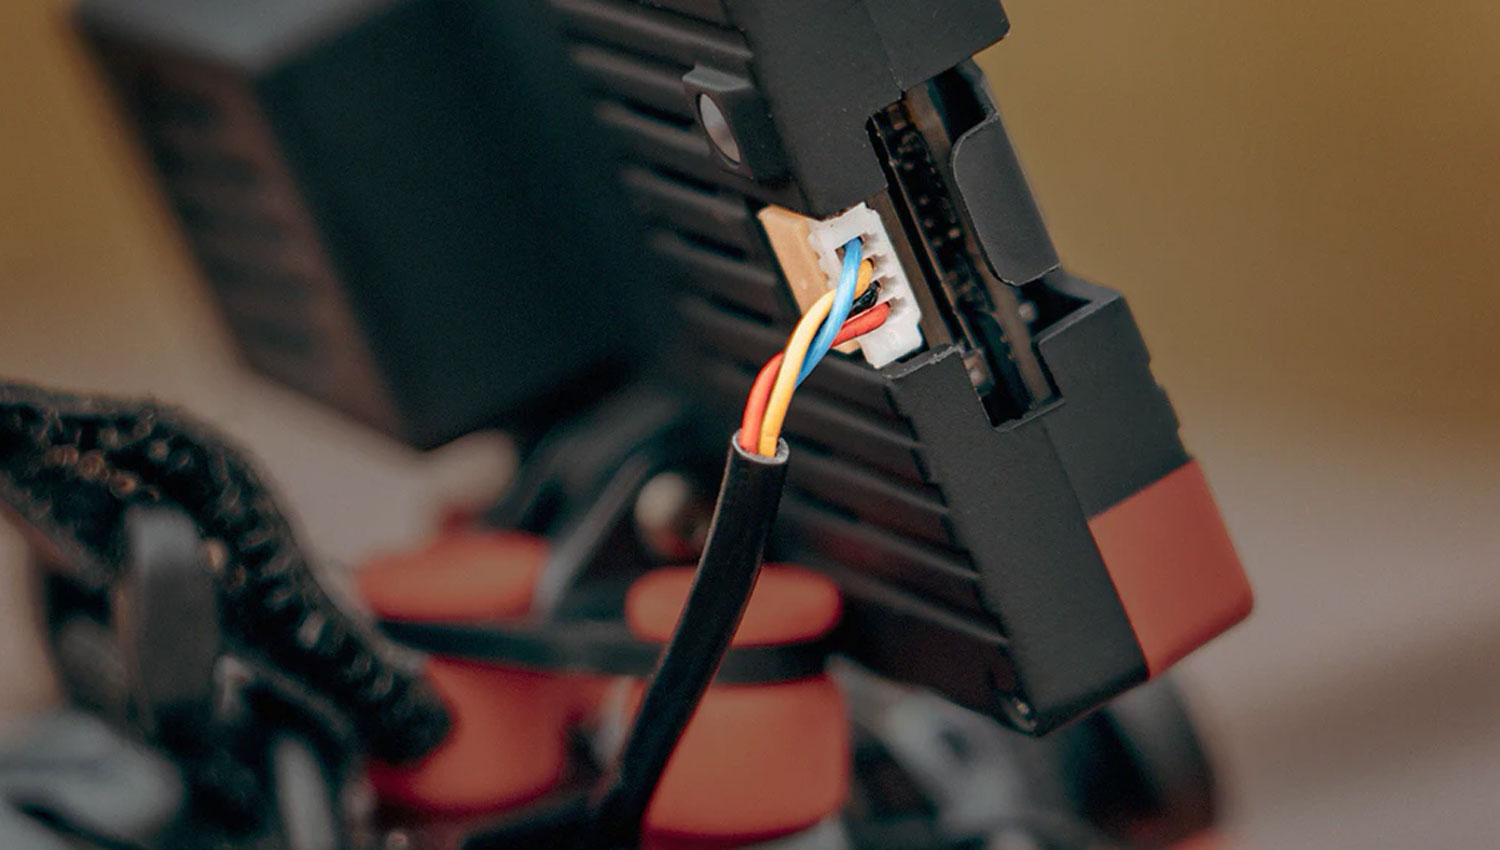 betafpv-SMO-4K-Camera-Cable-Pigtail_4.jpg